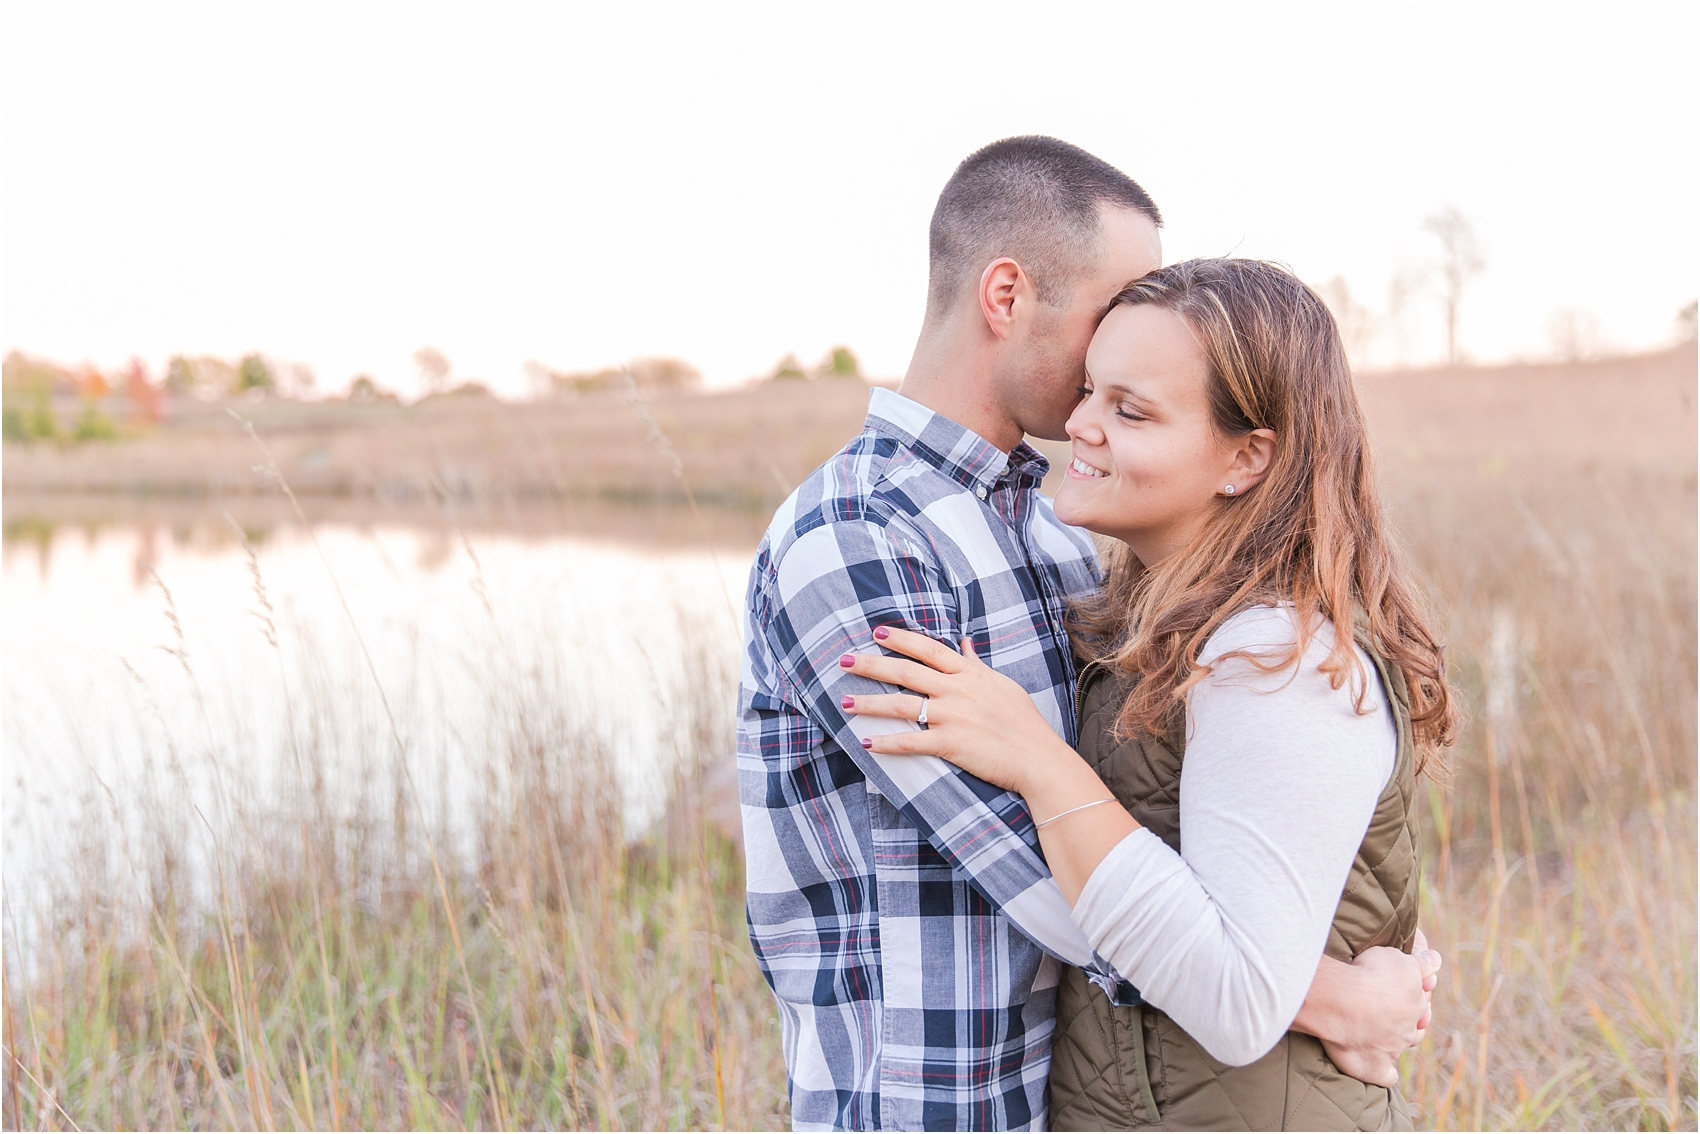 romantic-fall-engagement-photos-at-indian-springs-metropark-in-clarkston-mi-by-courtney-carolyn-photography_0001.jpg